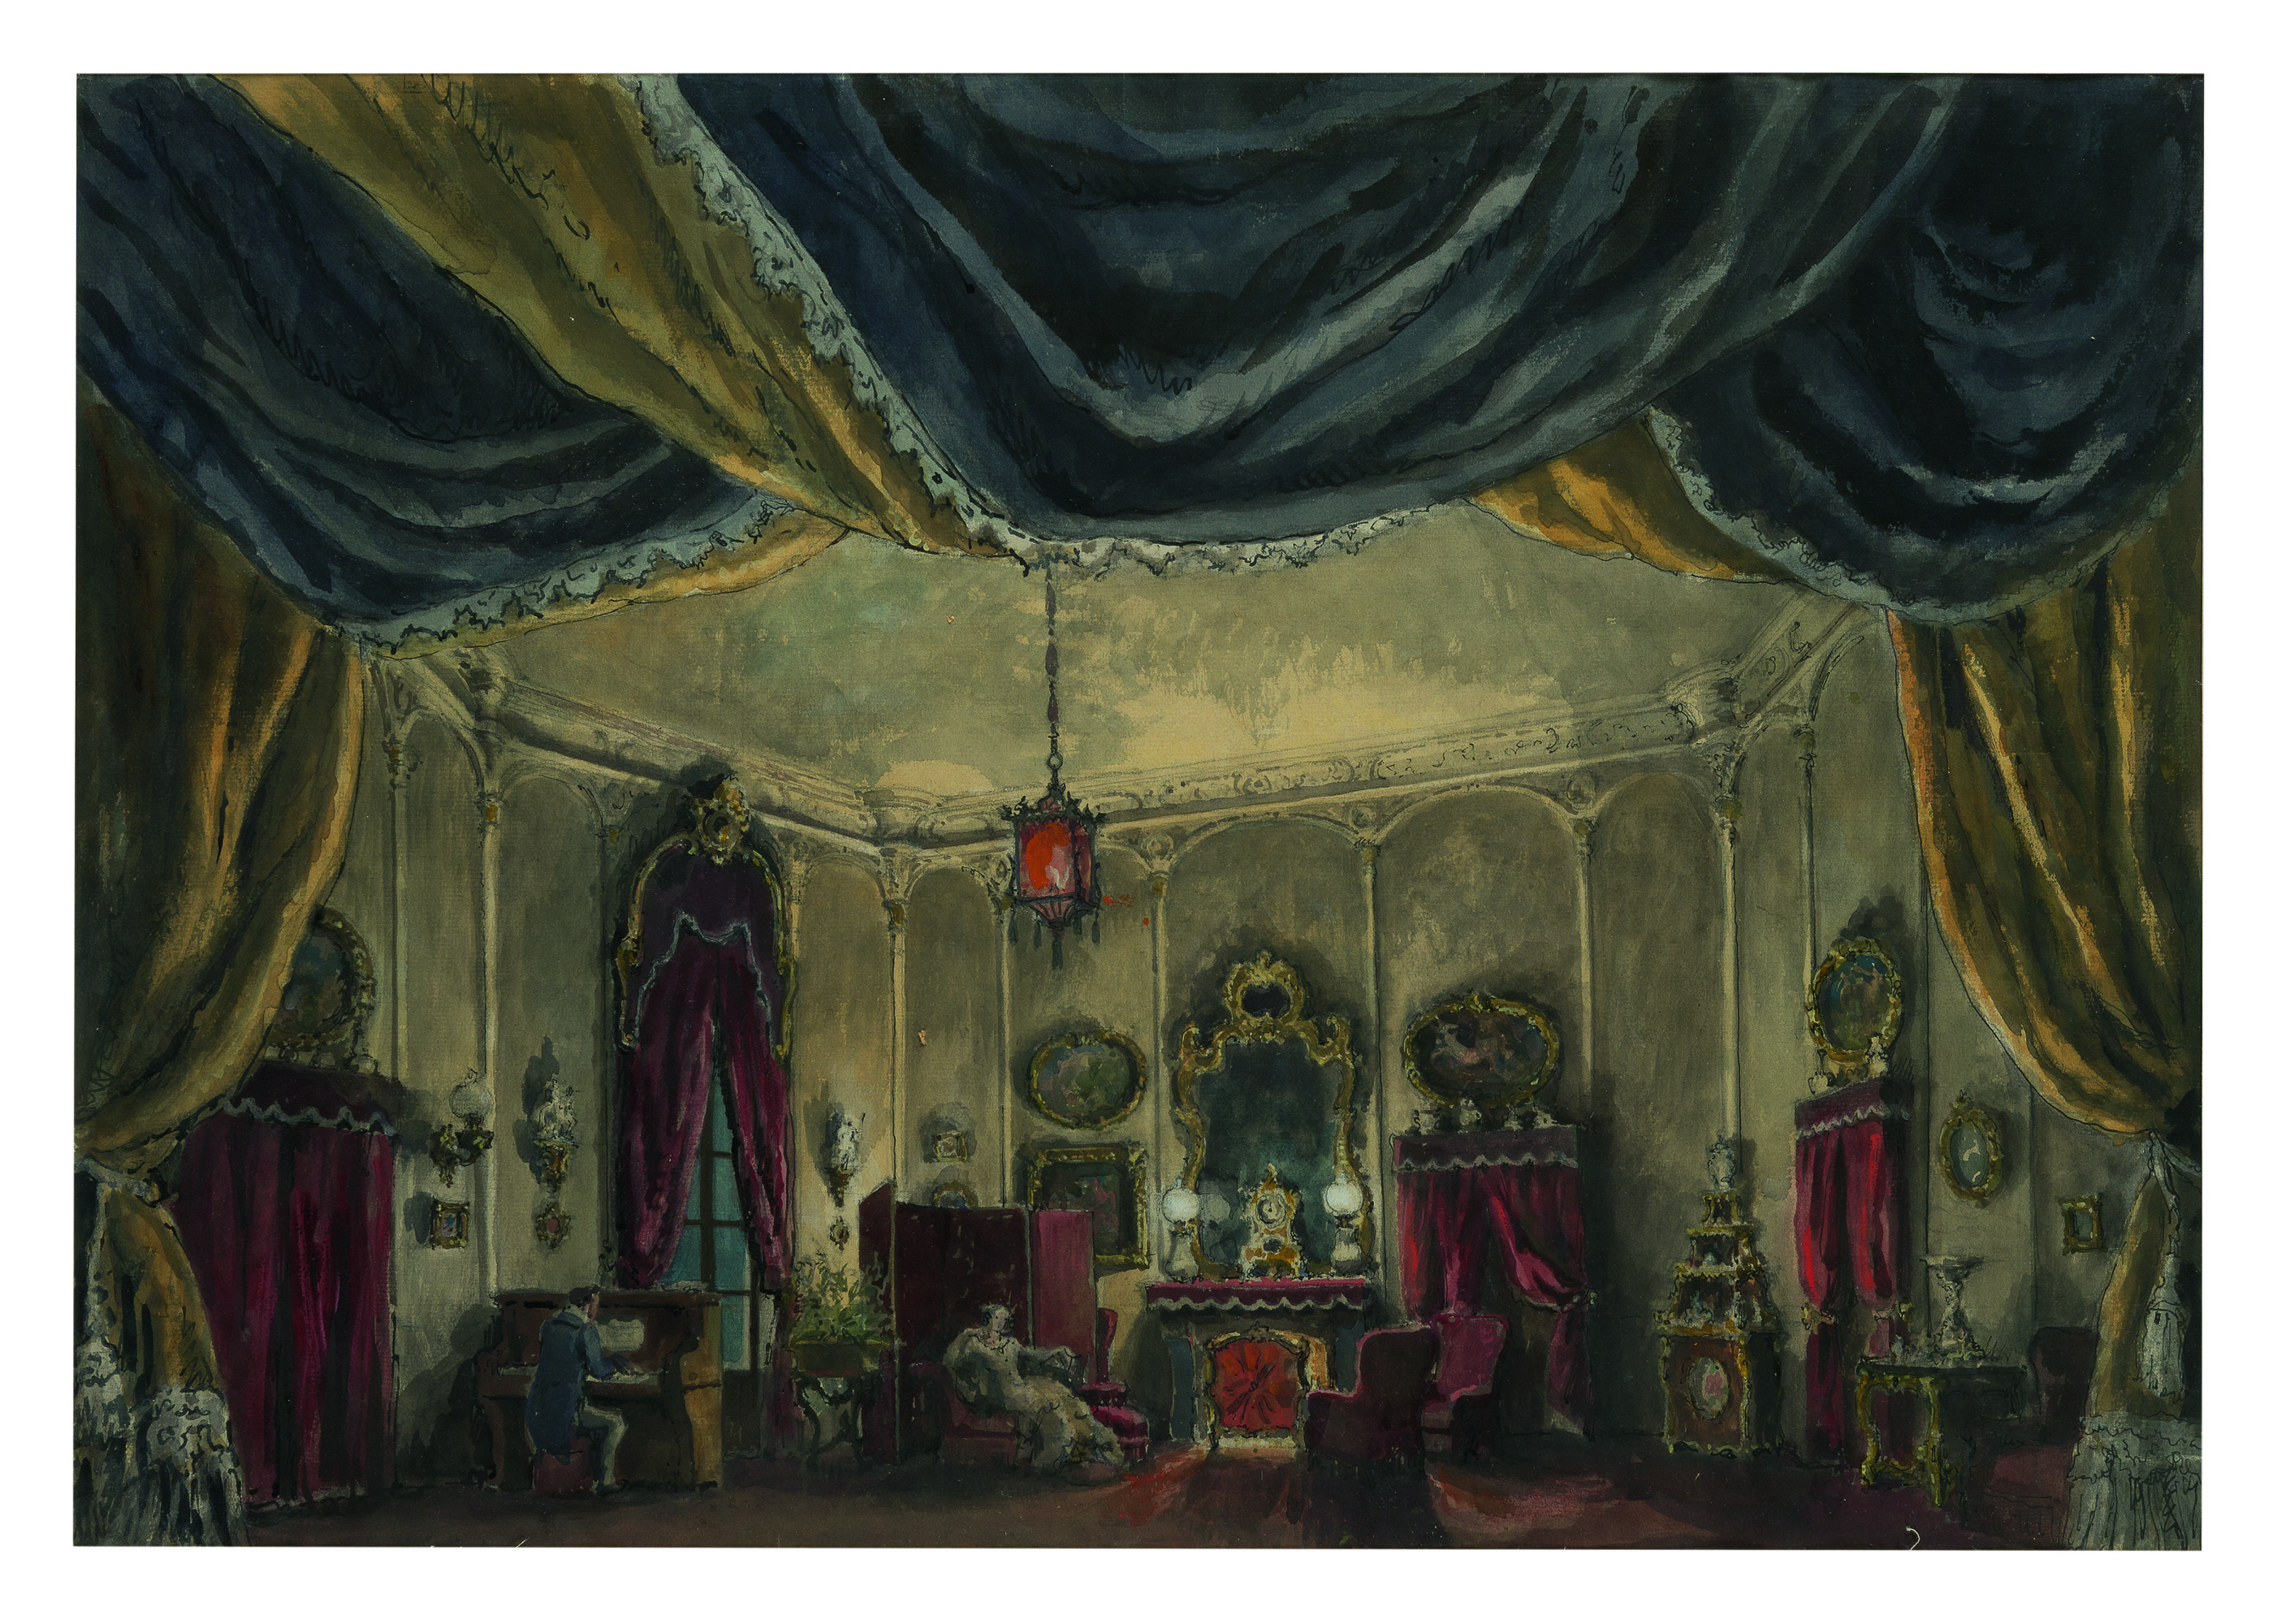 ALEXANDRE BENOIS | SET DESIGN FOR DAME AUX CAMELIAS: ACT I